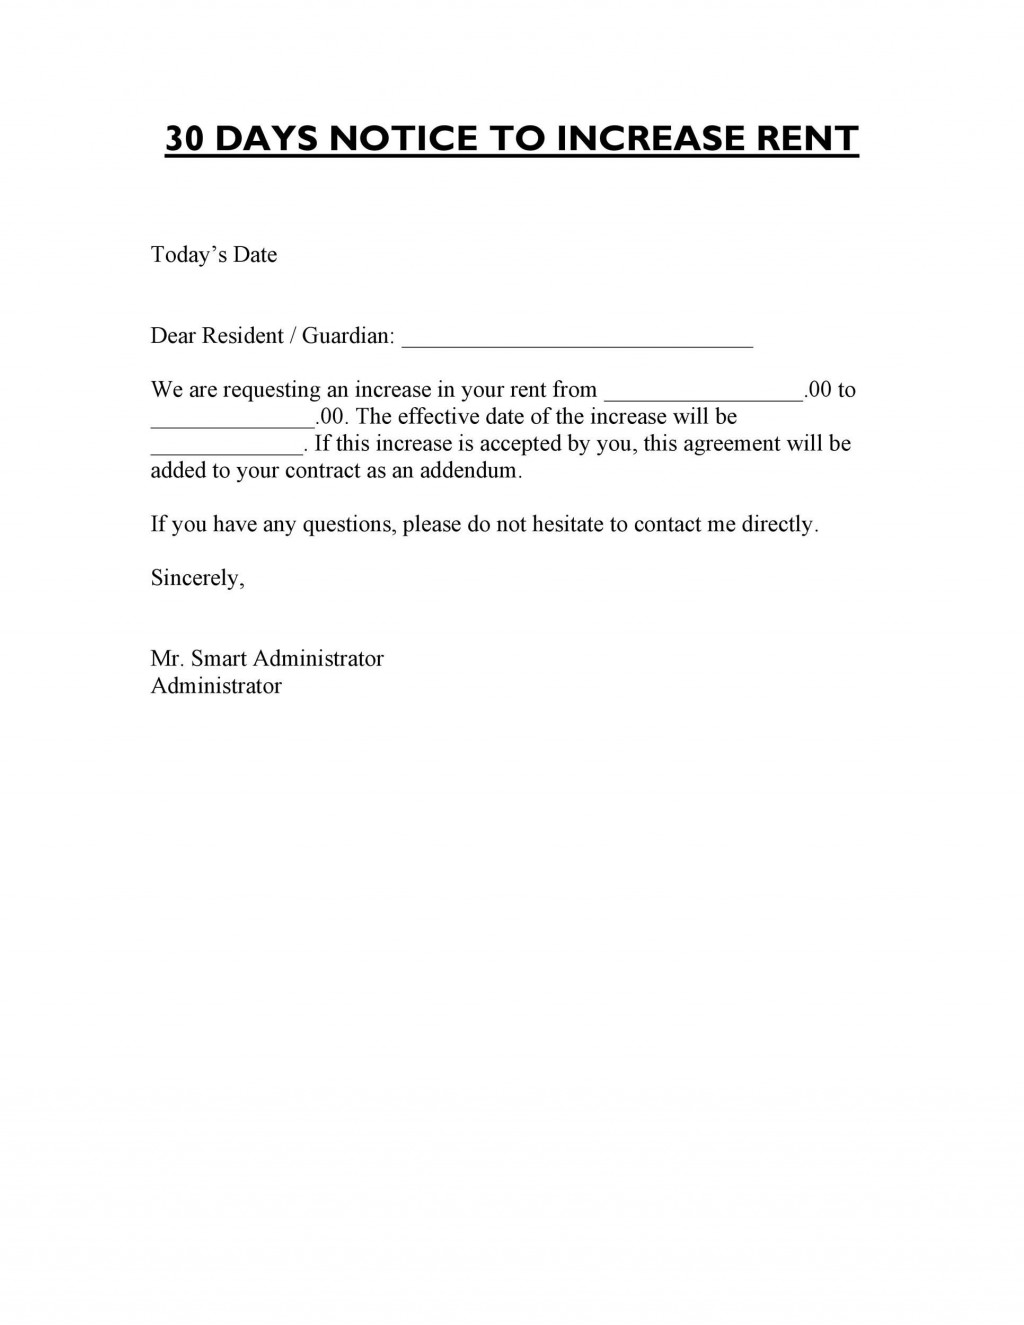 005 Awesome Rent Increase Letter Template Sample  Rental South Africa Nz ScotlandLarge